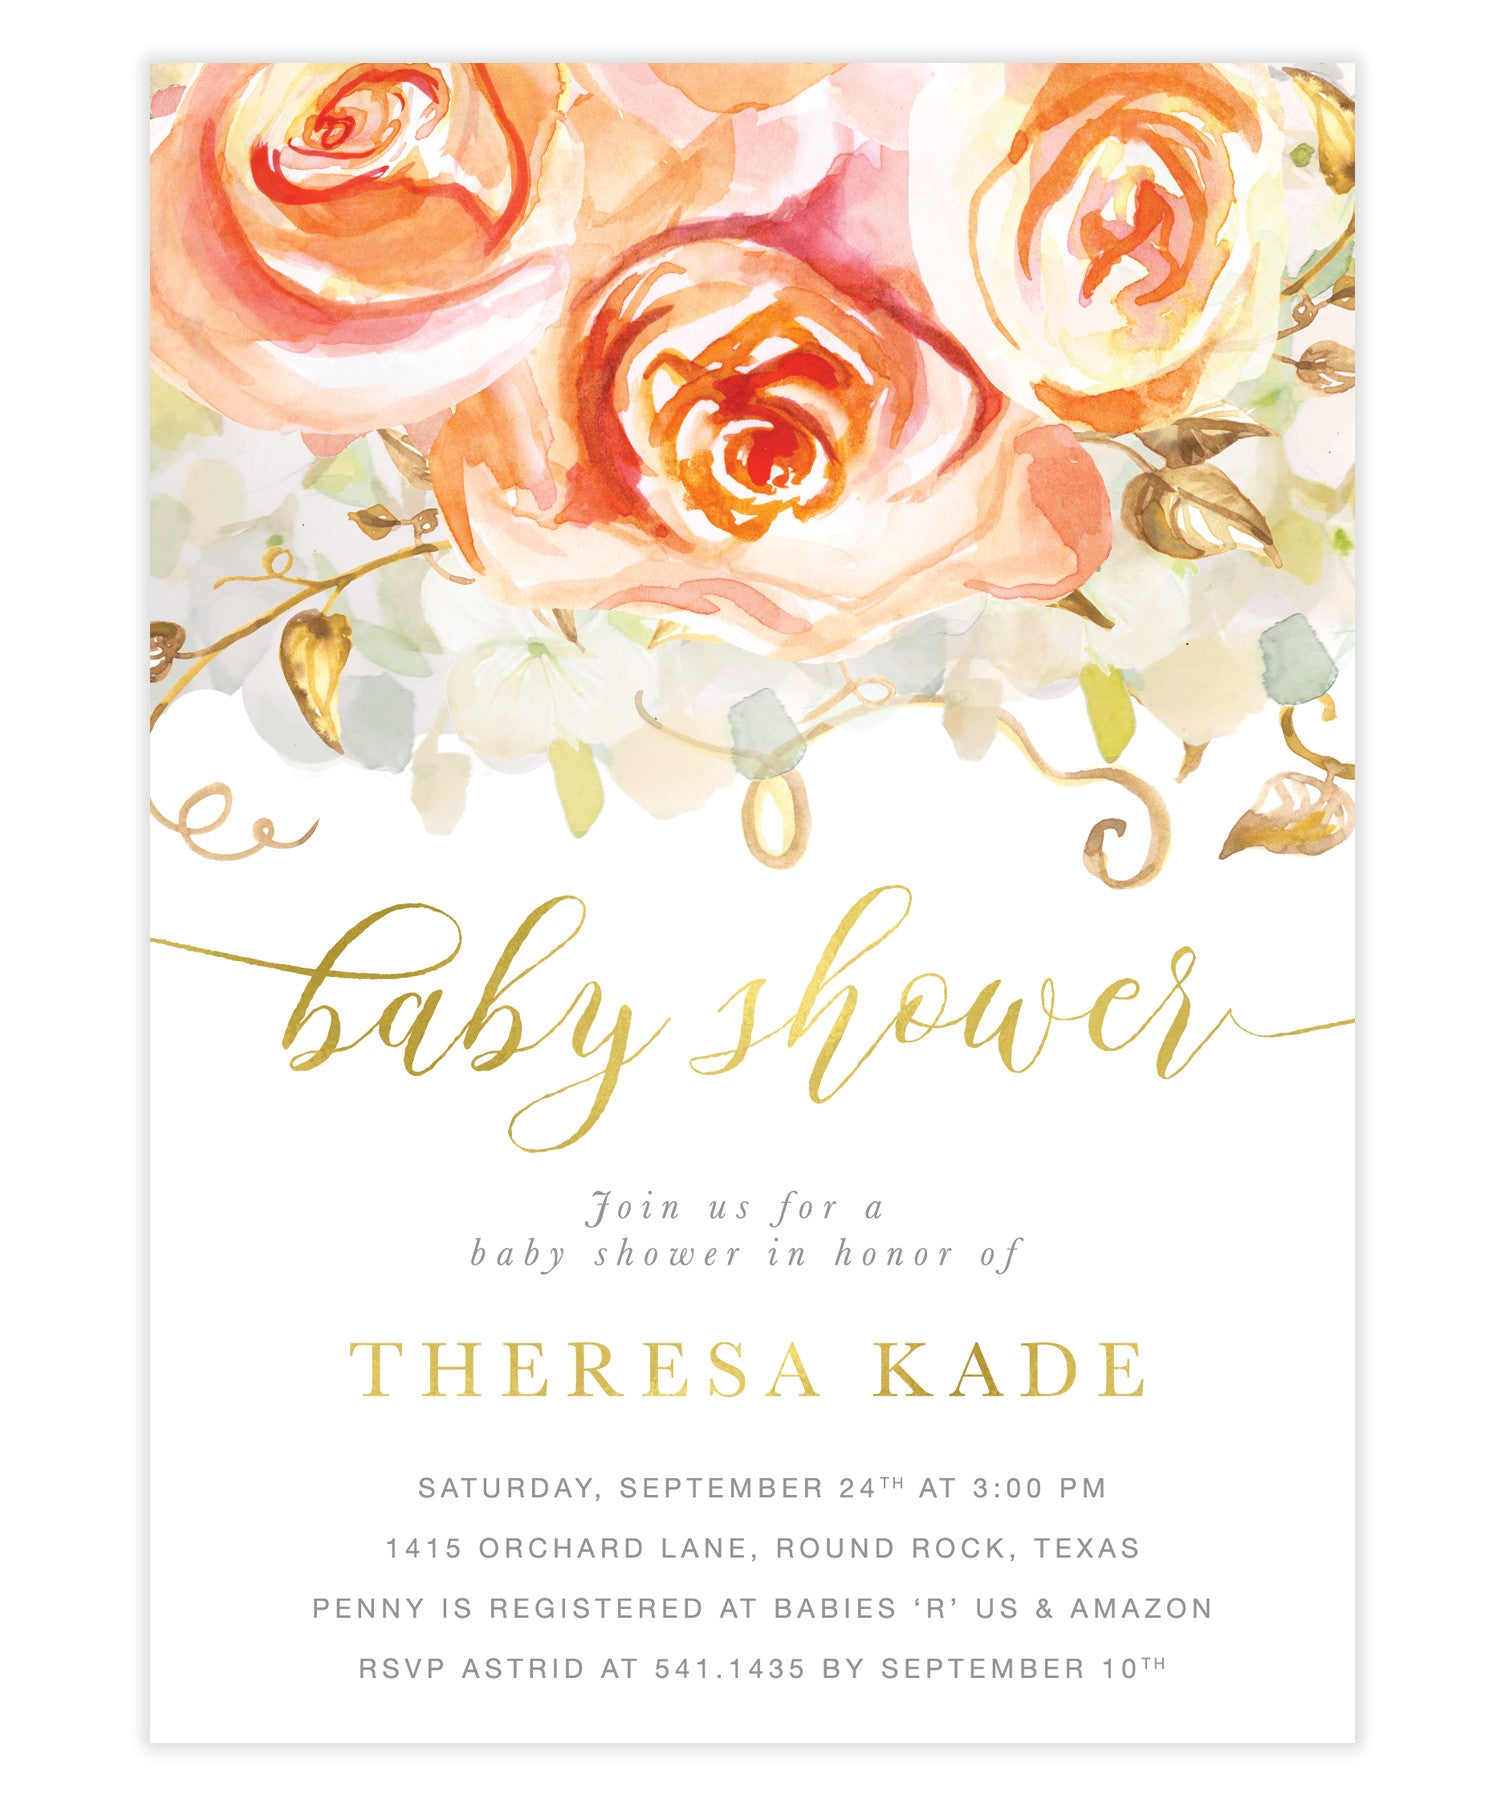 Fall Baby Shower Invitation: Orange & Peach Roses and Hydrangeas ...